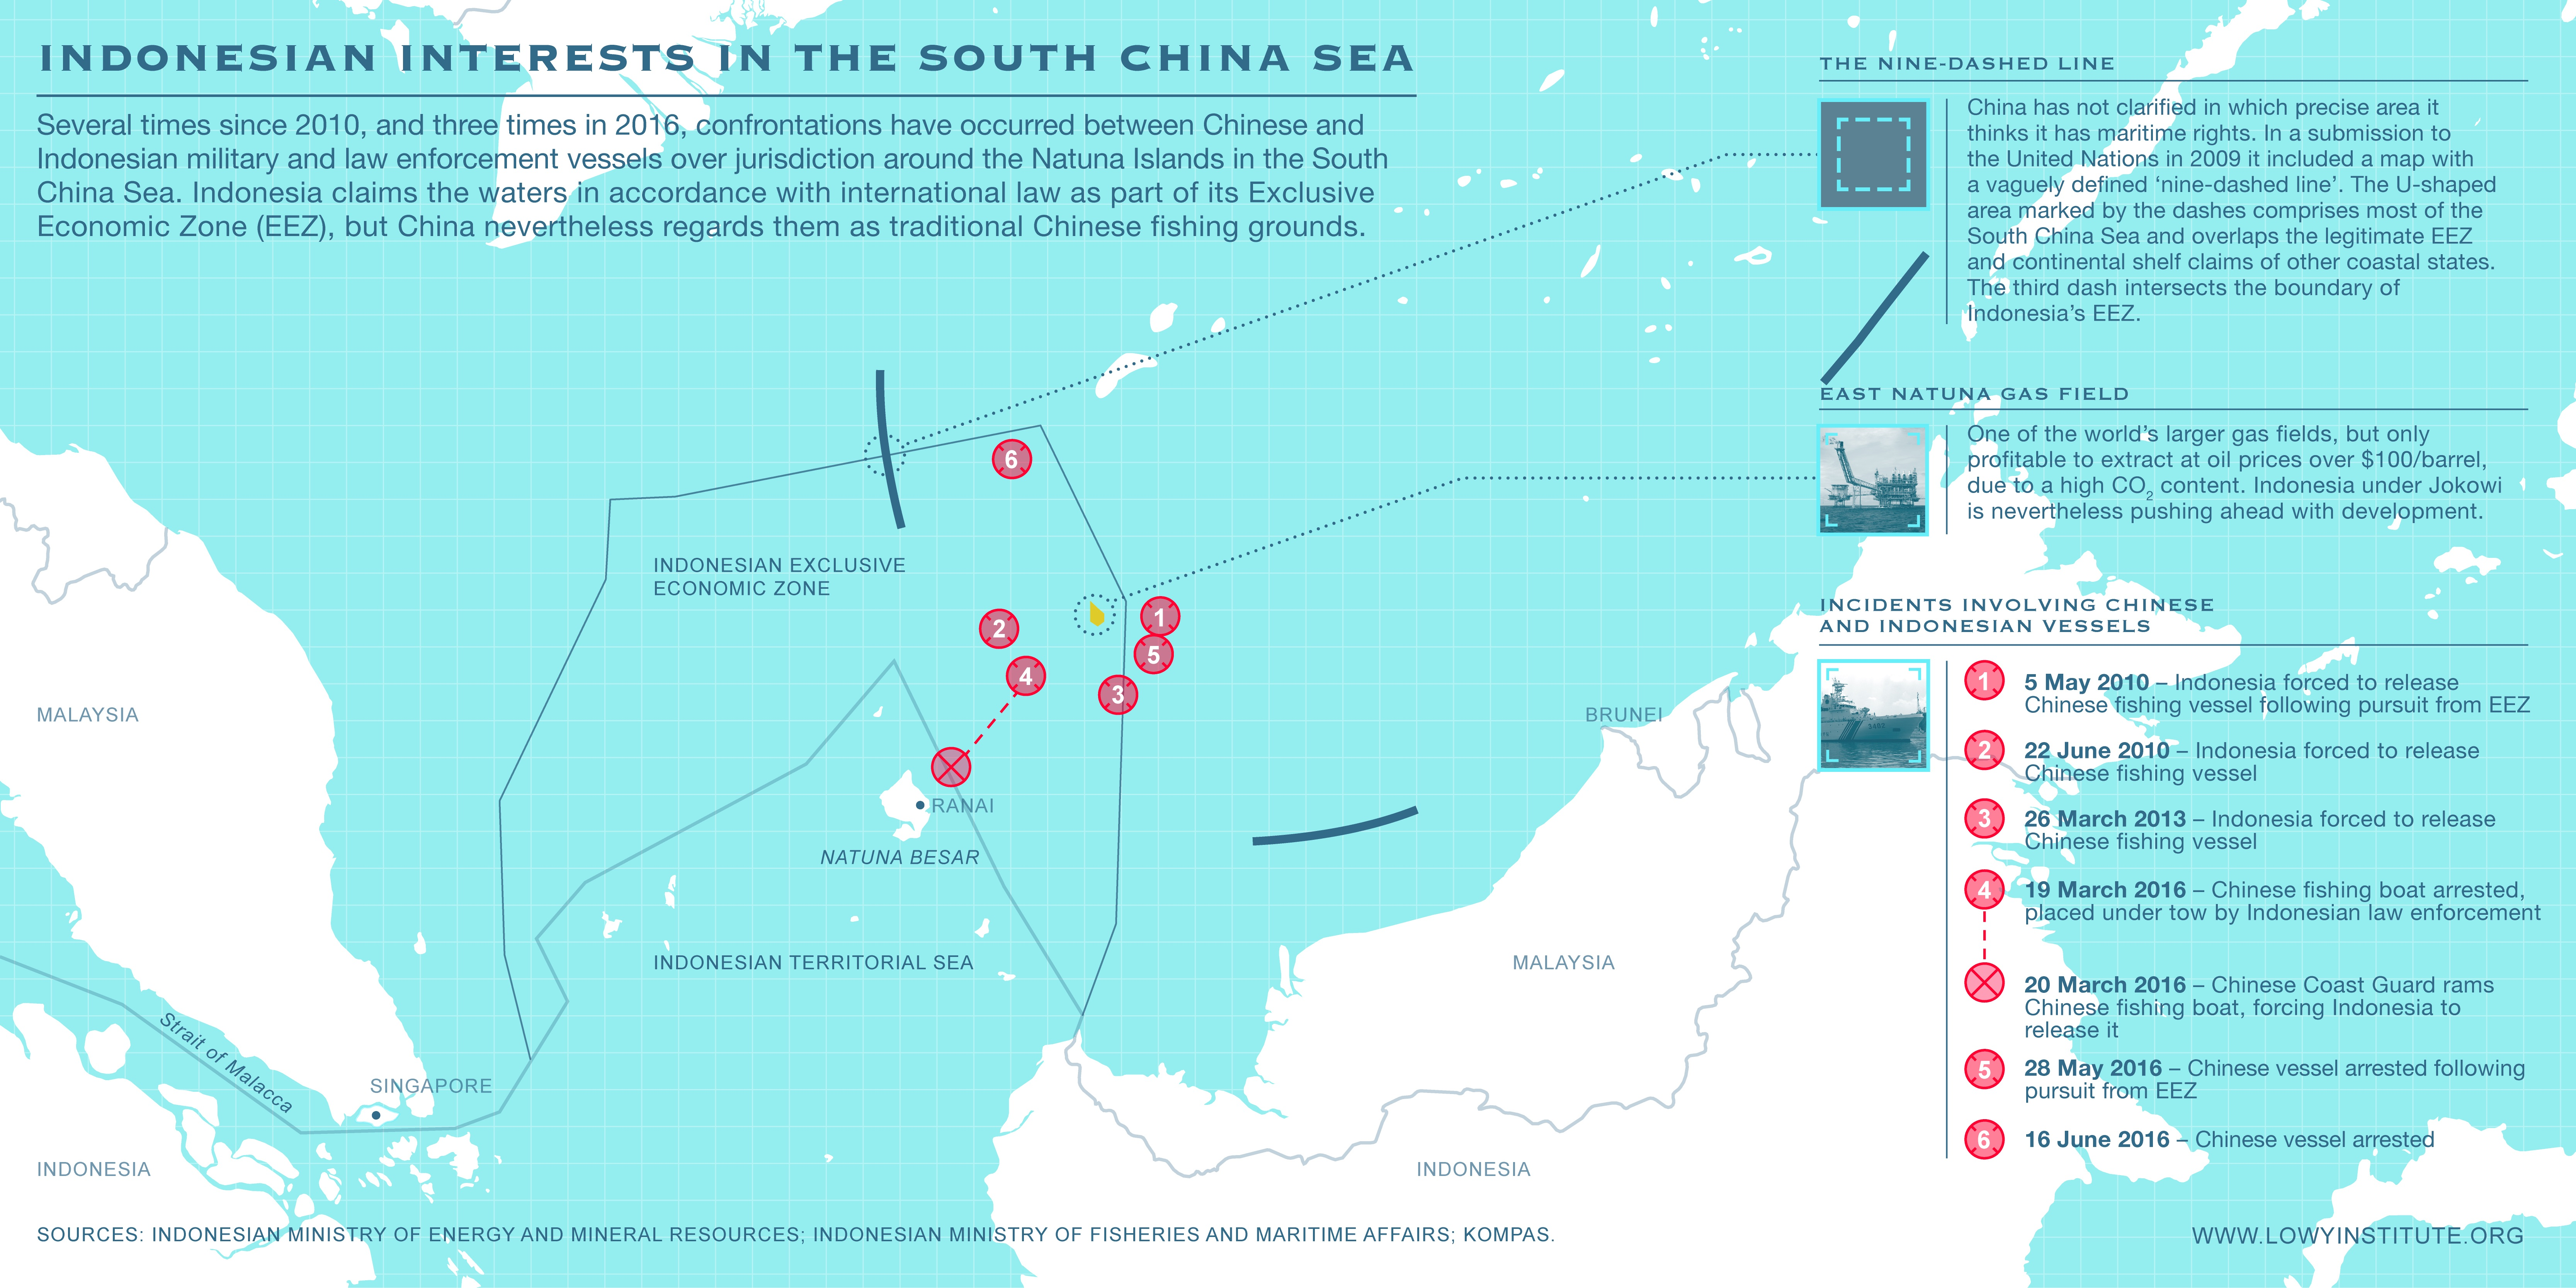 Indonesian interests in the South China Sea